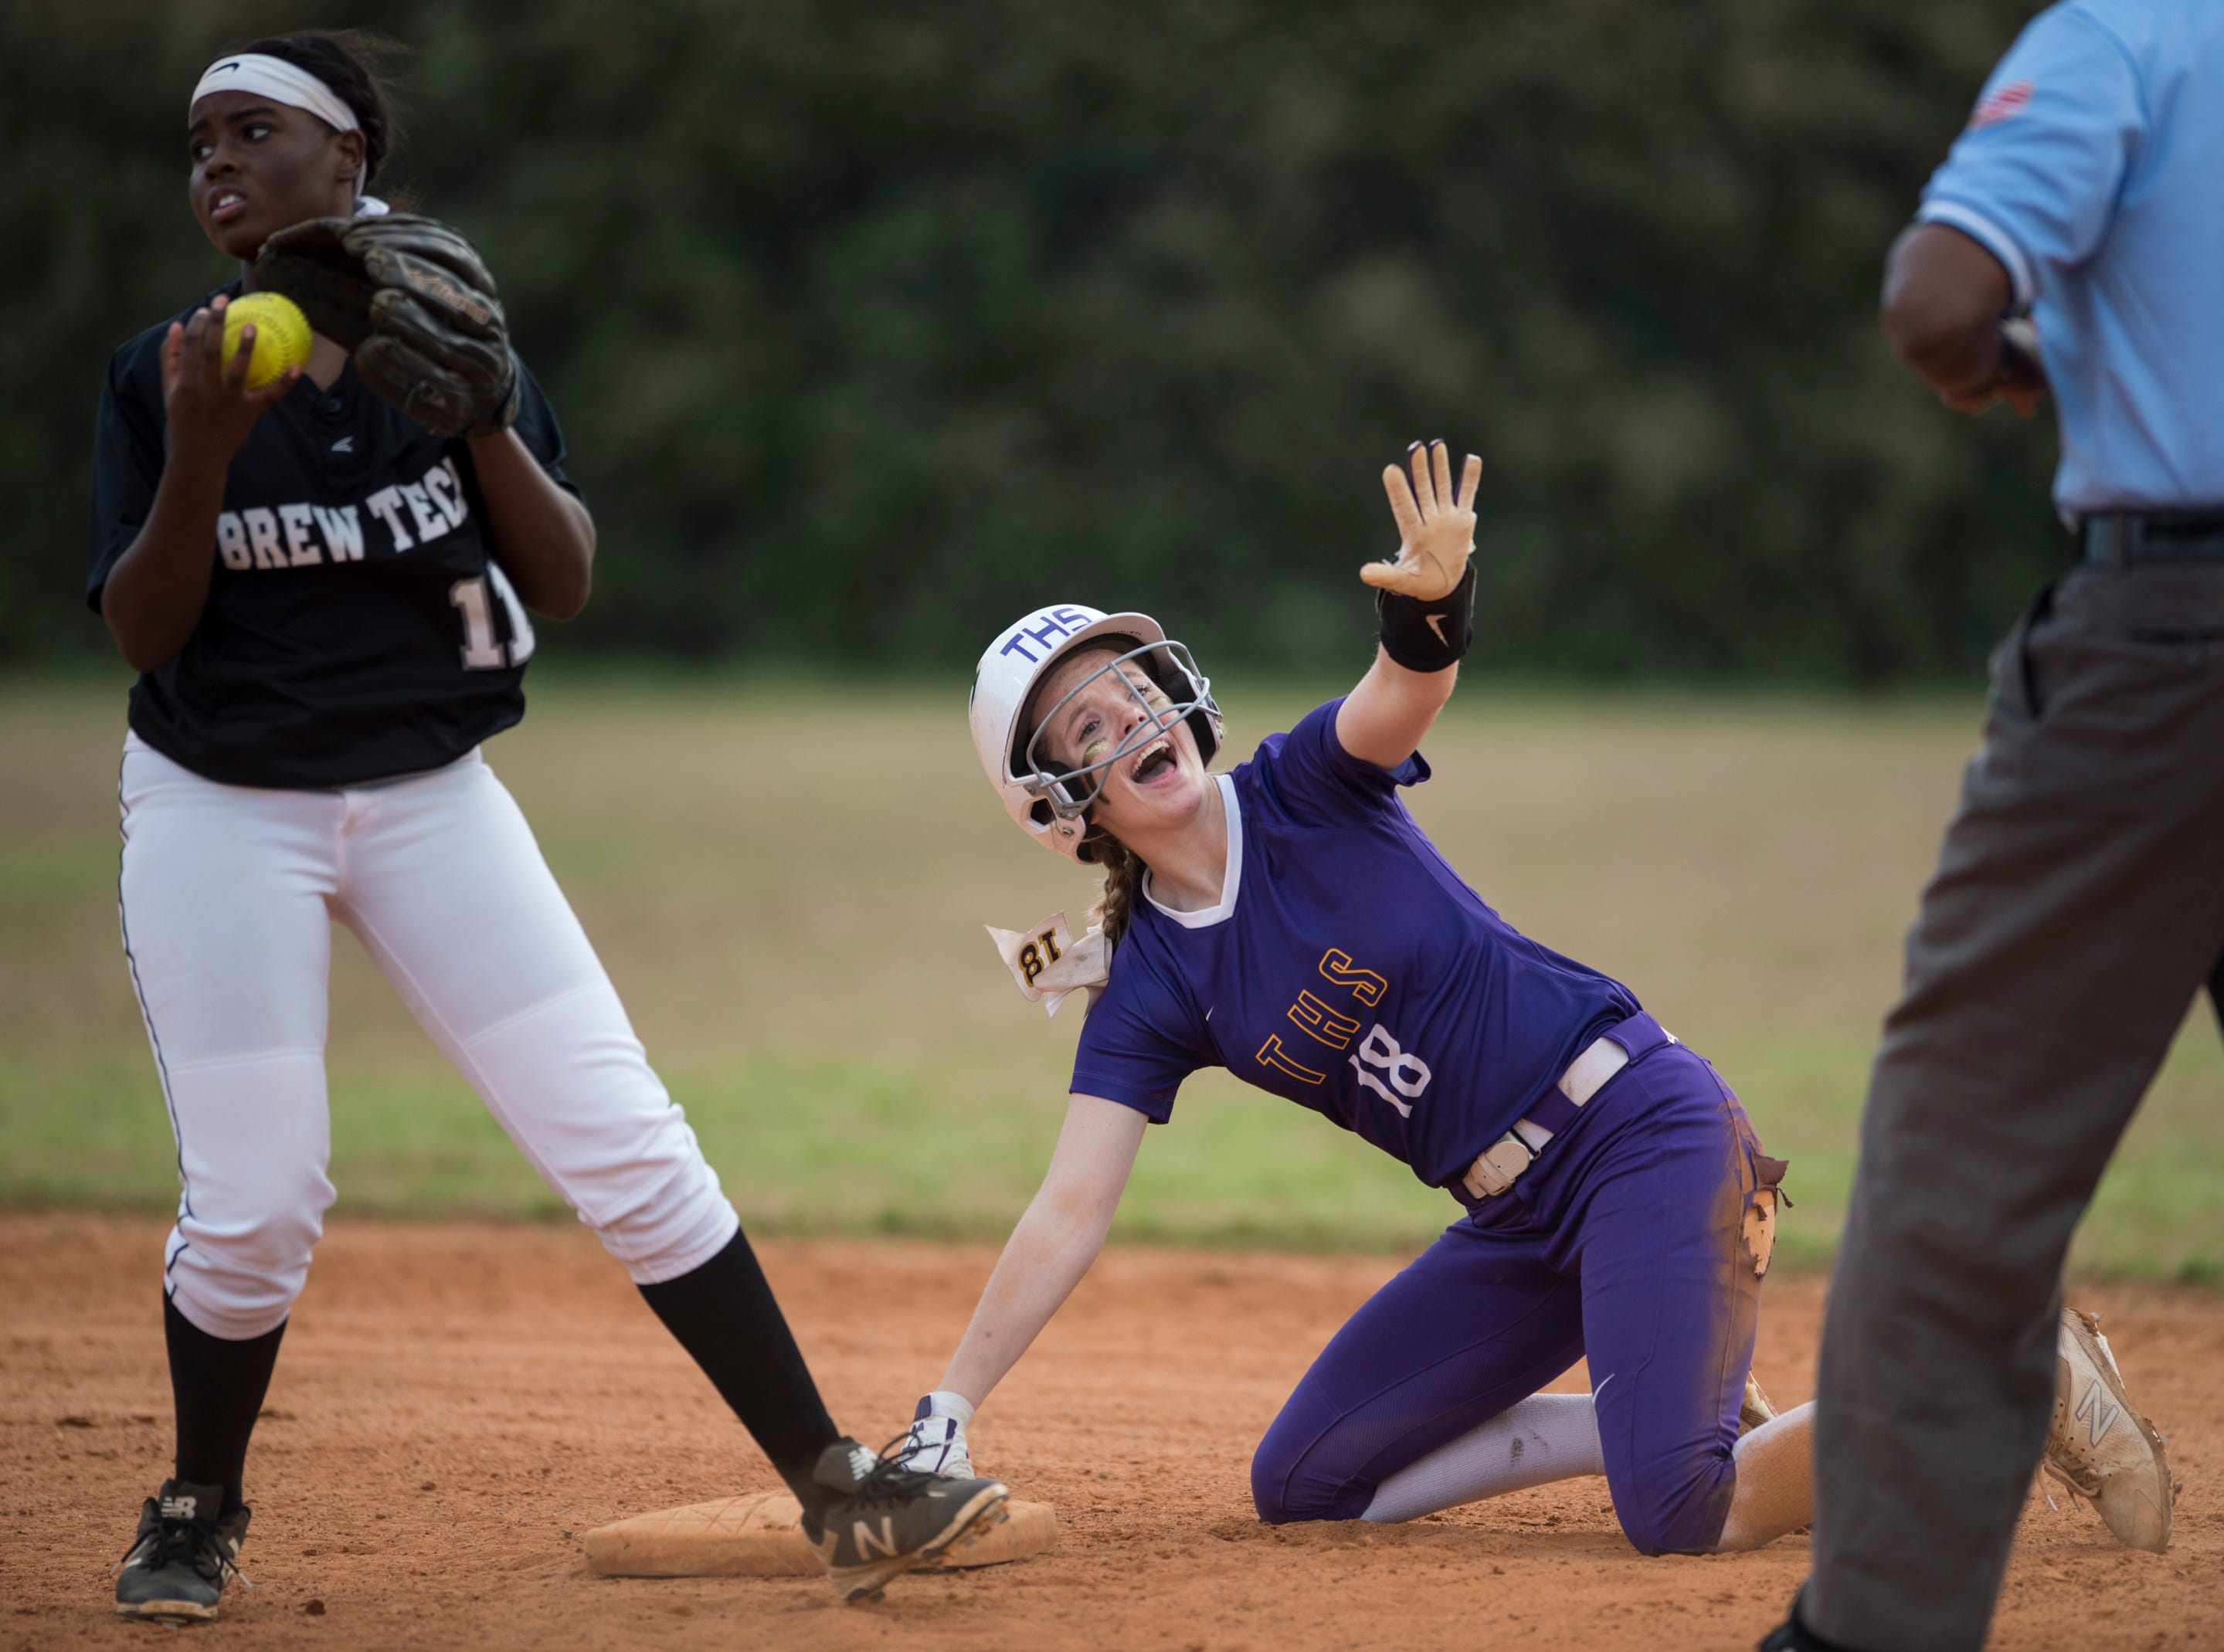 Tallassee's Chloe Baynes (18) asks for a pause after making it safely to second base at Thompson Park in Montgomery, Ala., on Thursday, March 14, 2019. Tallassee defeated Brew Tech 7-0.